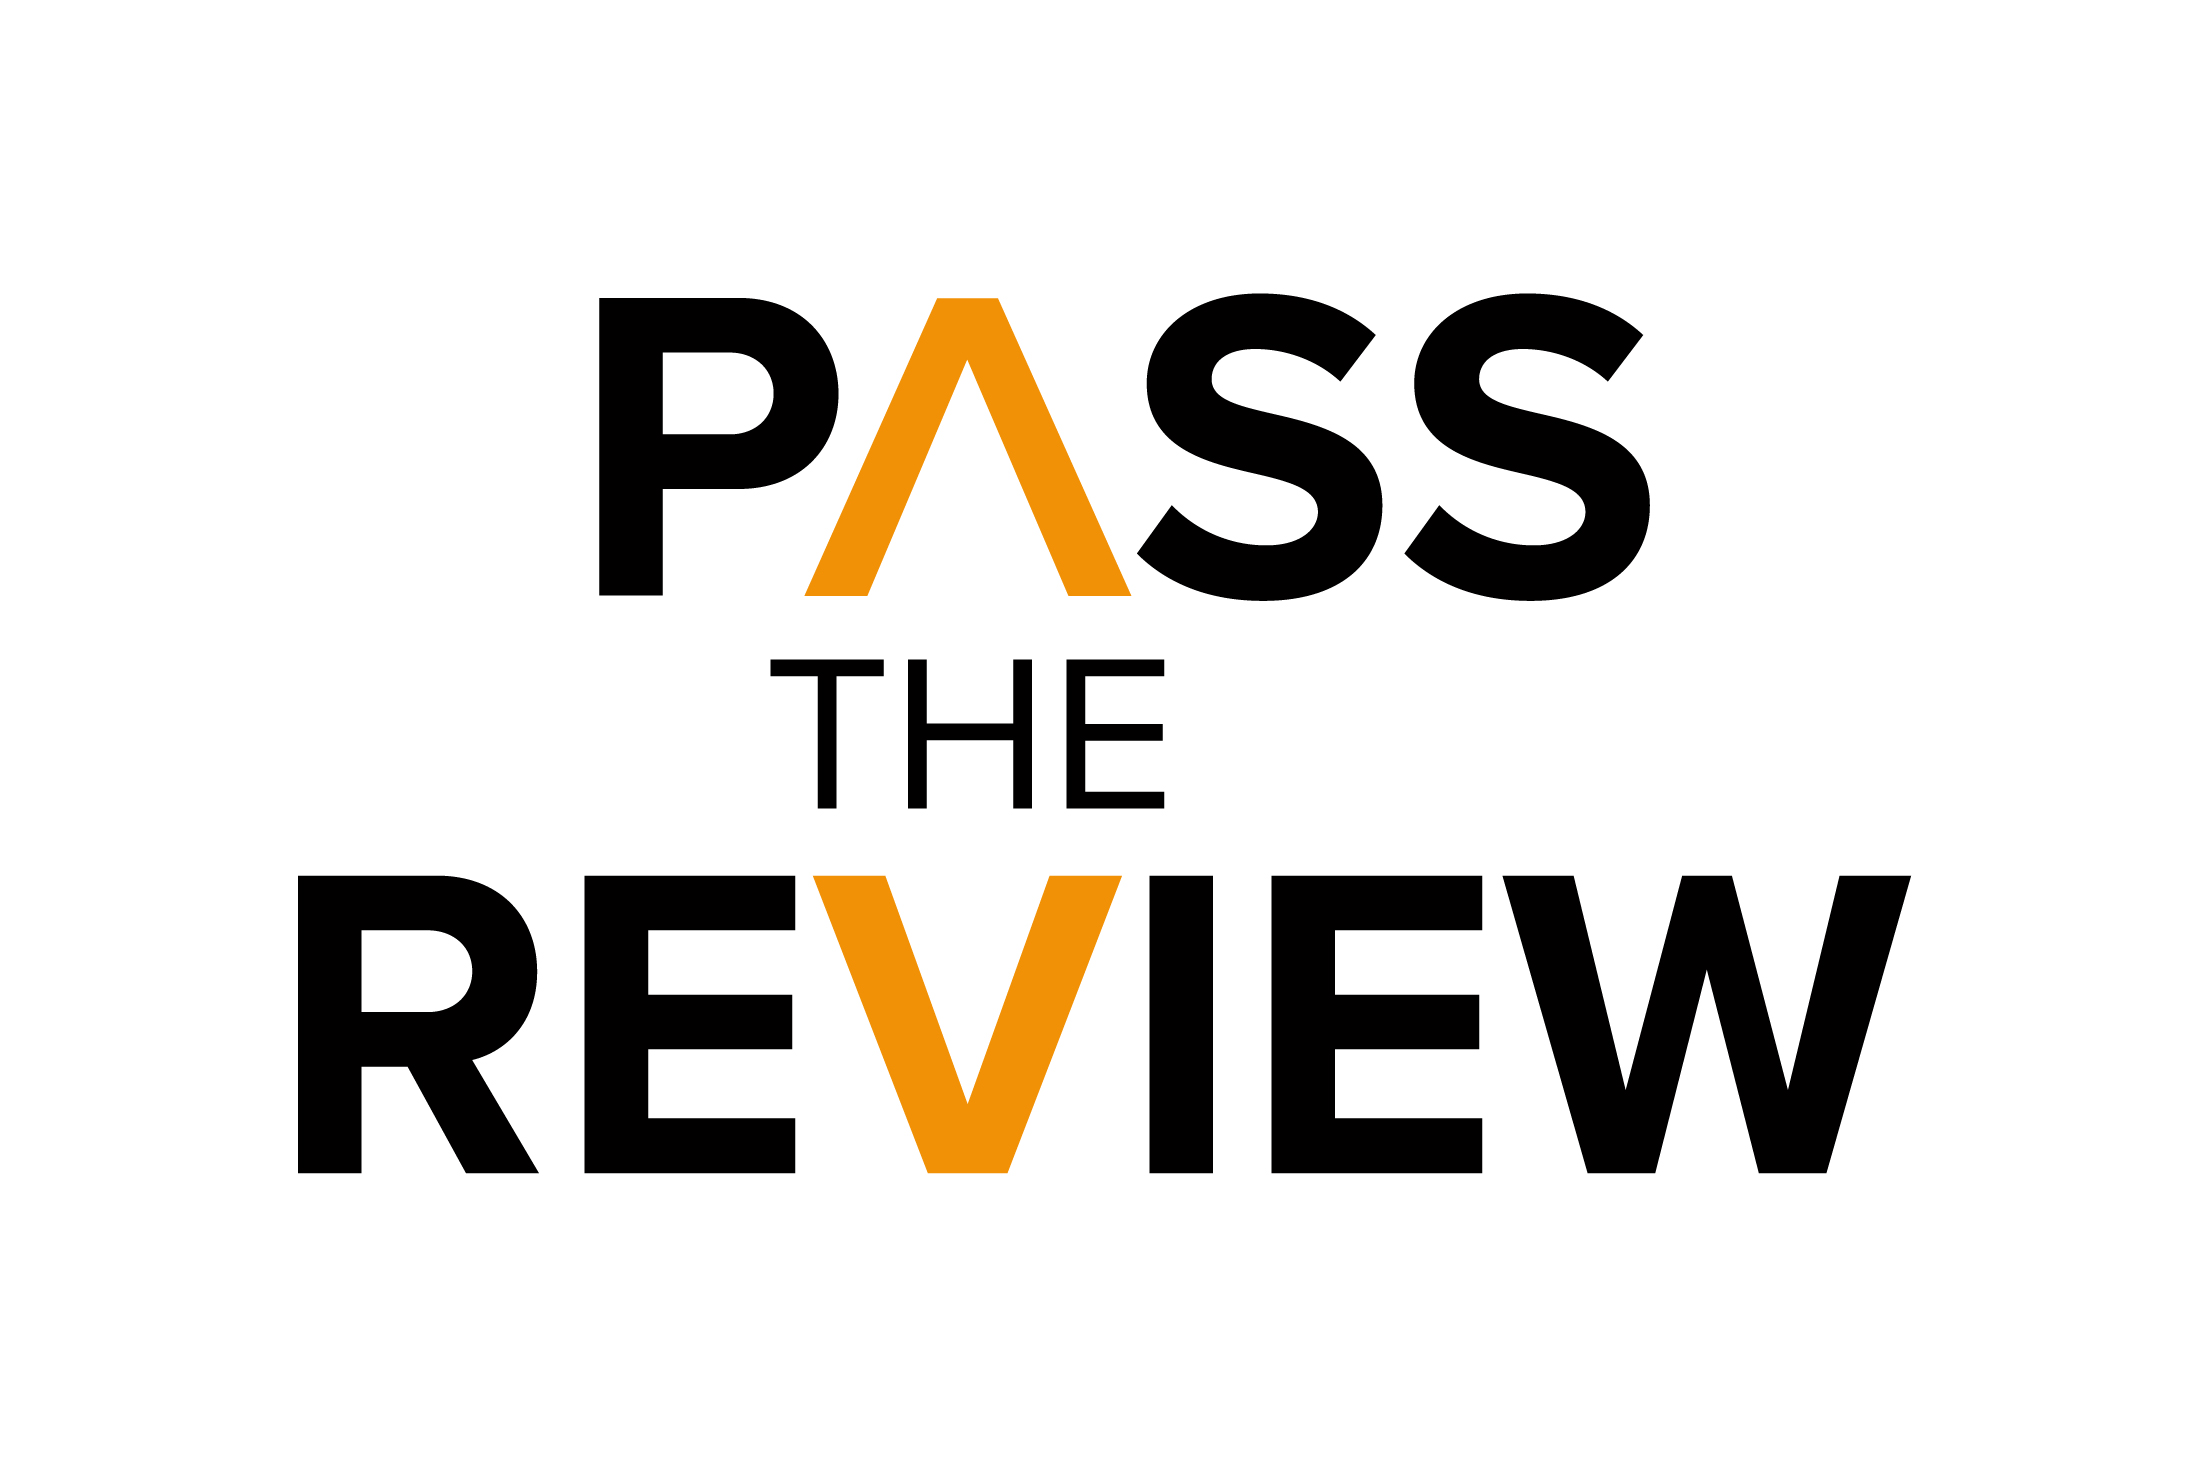 PassTheReview - newsletter logo